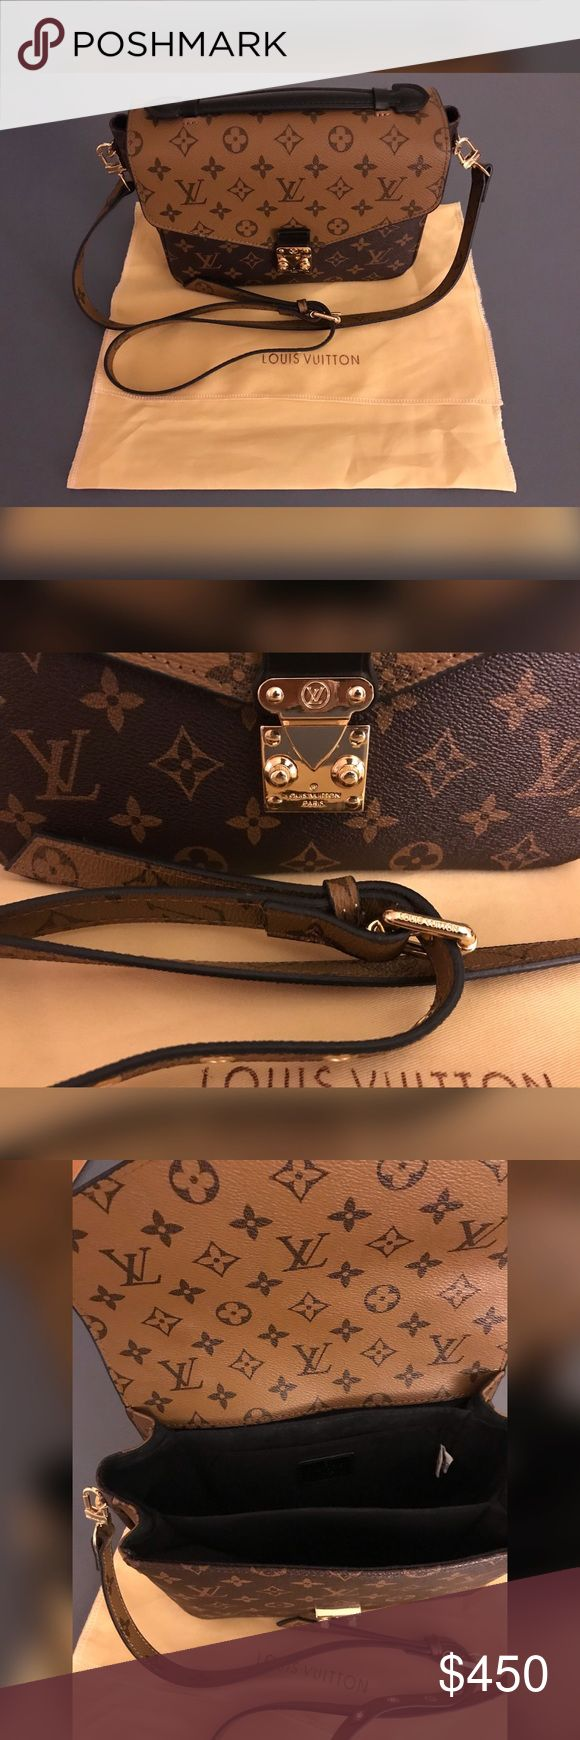 New bag New bag , 1:1 high mirrored quality bag , Not authentic not trying to fool anyone , comments are welcomed if you are interested , no low ballers as this bag is hard to find as a rep Louis Vuitton Bags Crossbody Bags